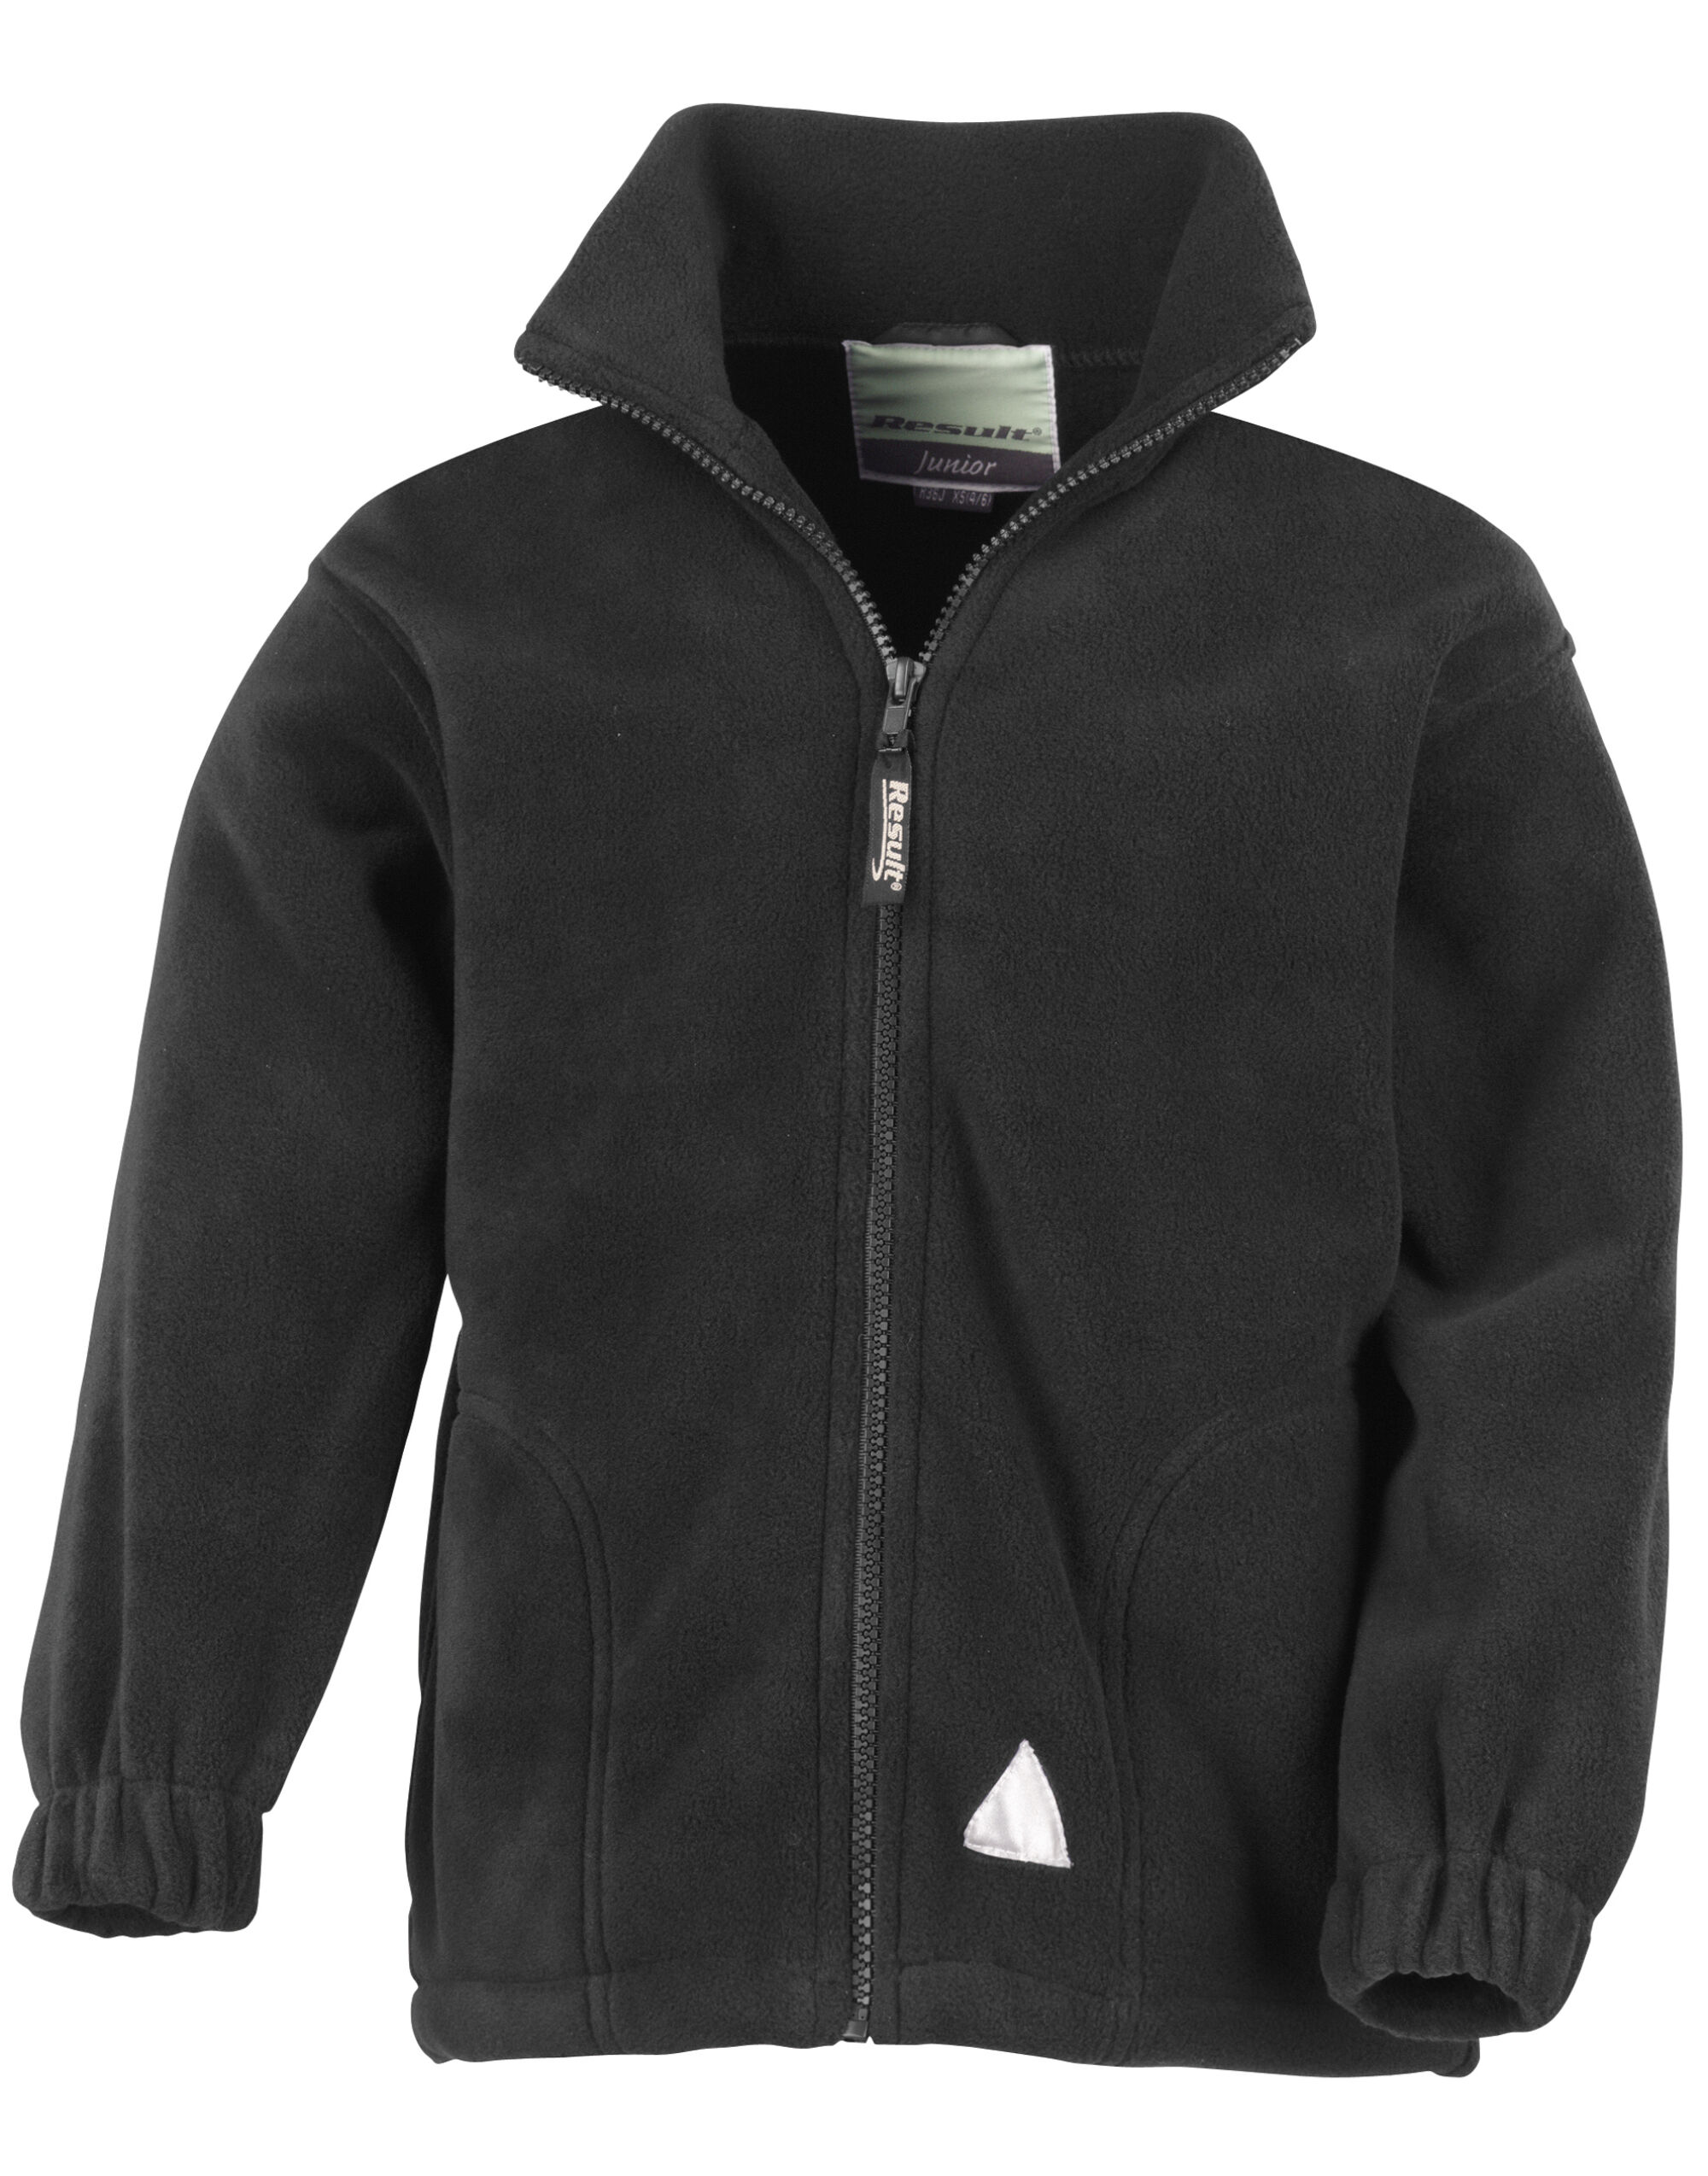 Children's Full Zip Active Fleece Jack...